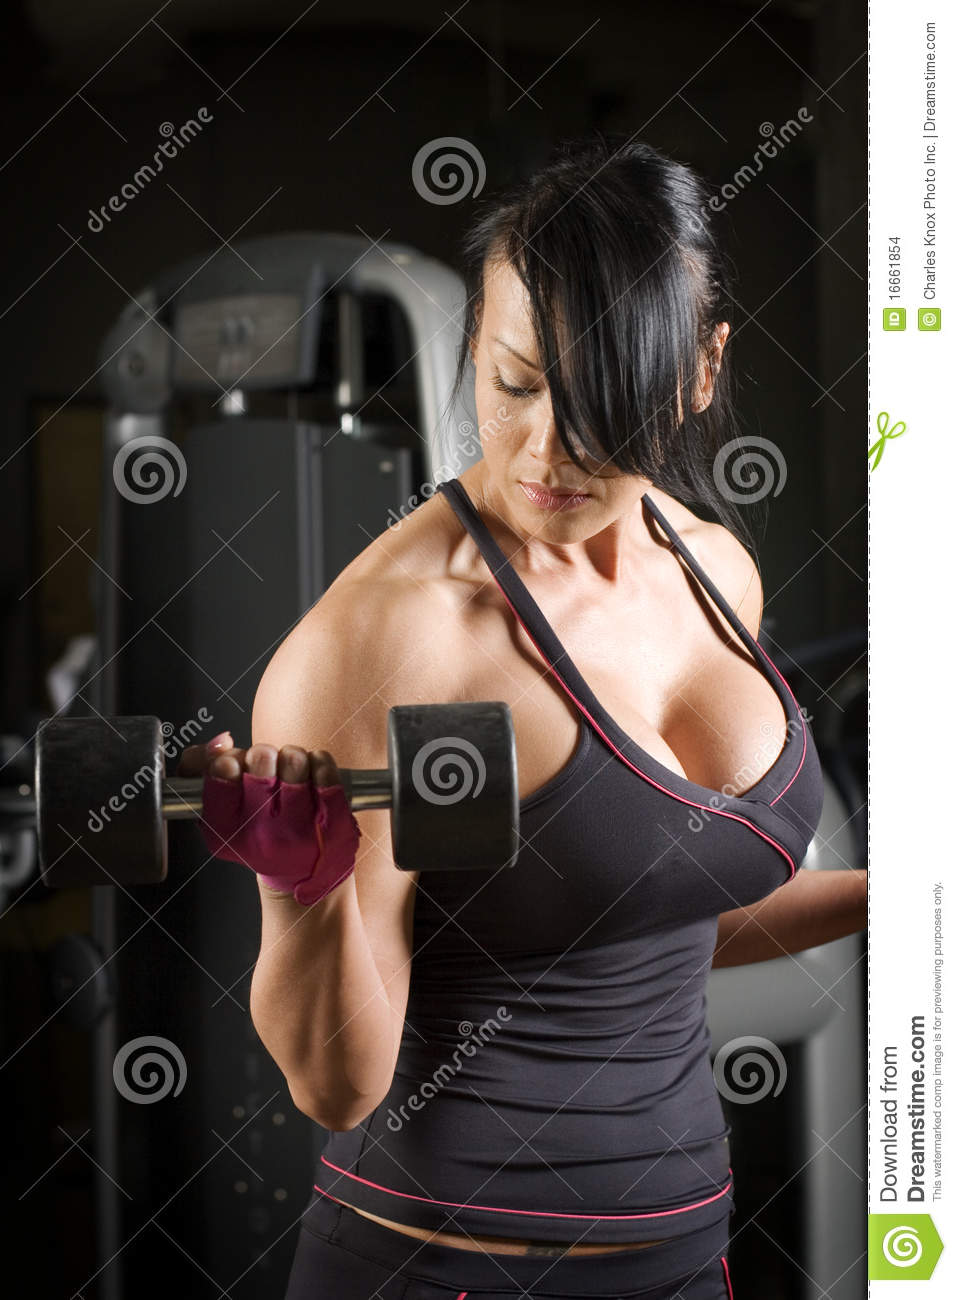 Muscular Asian Woman Working Out With Weights Stock Images -7691